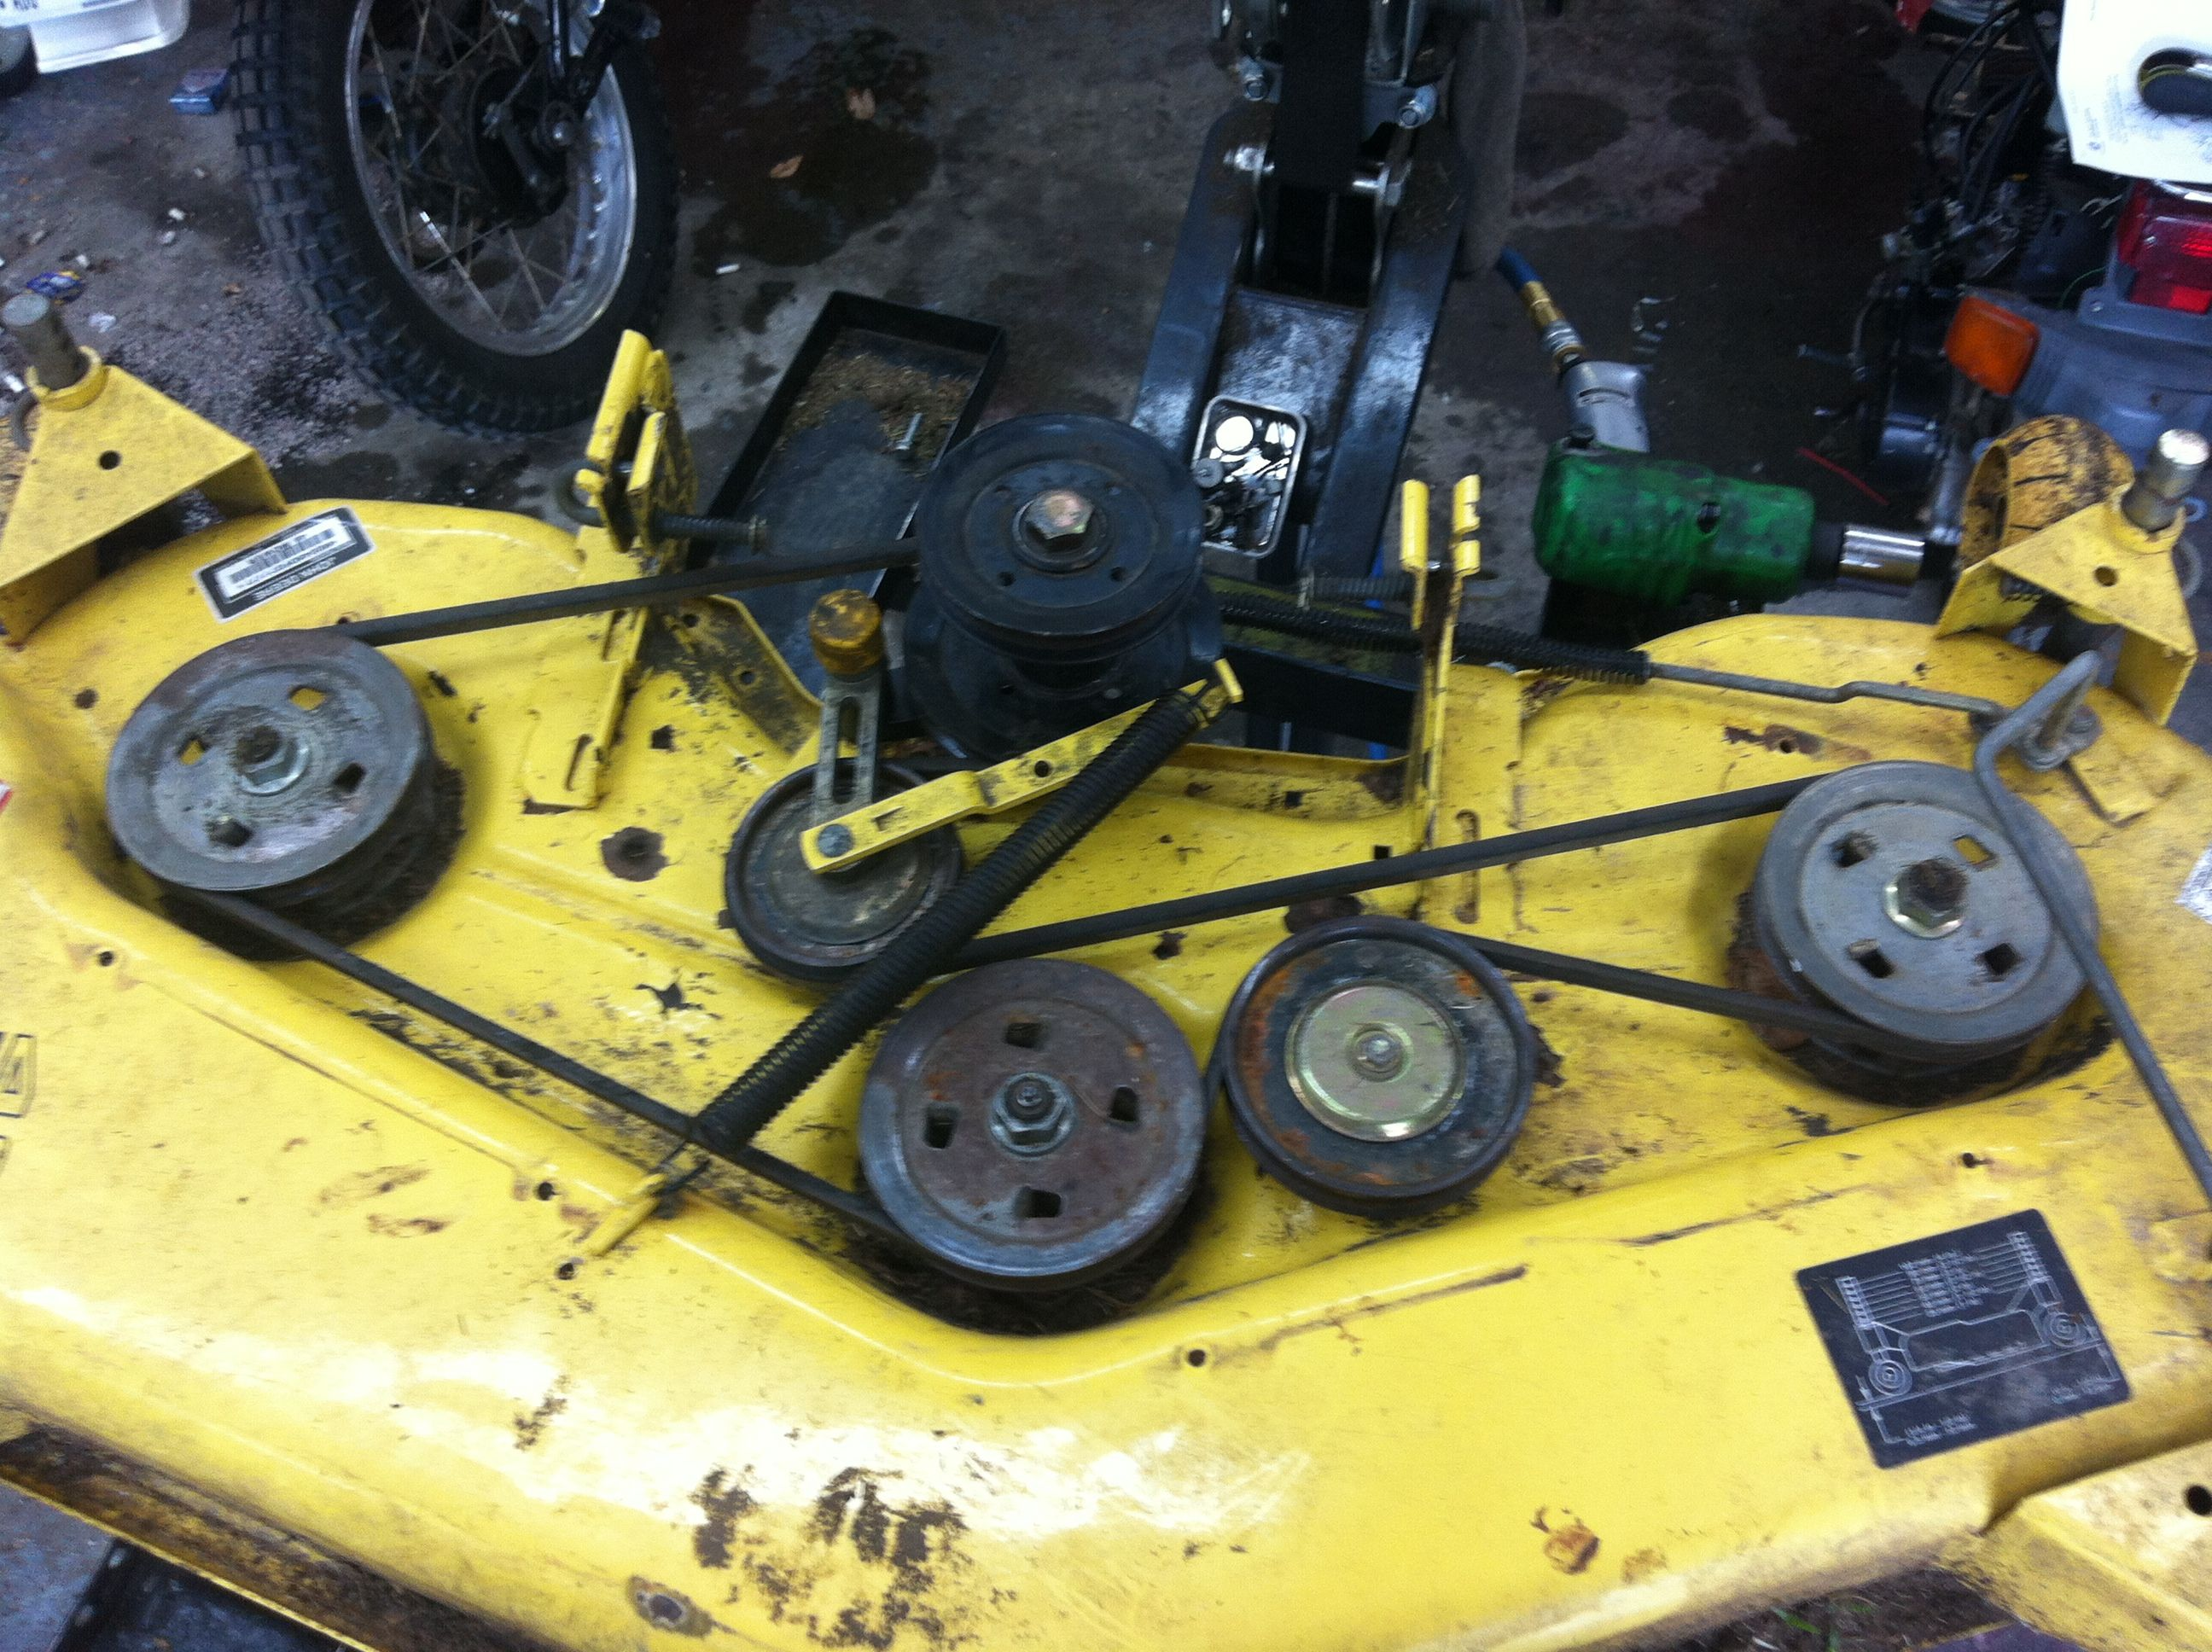 hight resolution of john deere 245 belt diagram for mower deck here is a picture showing the correct